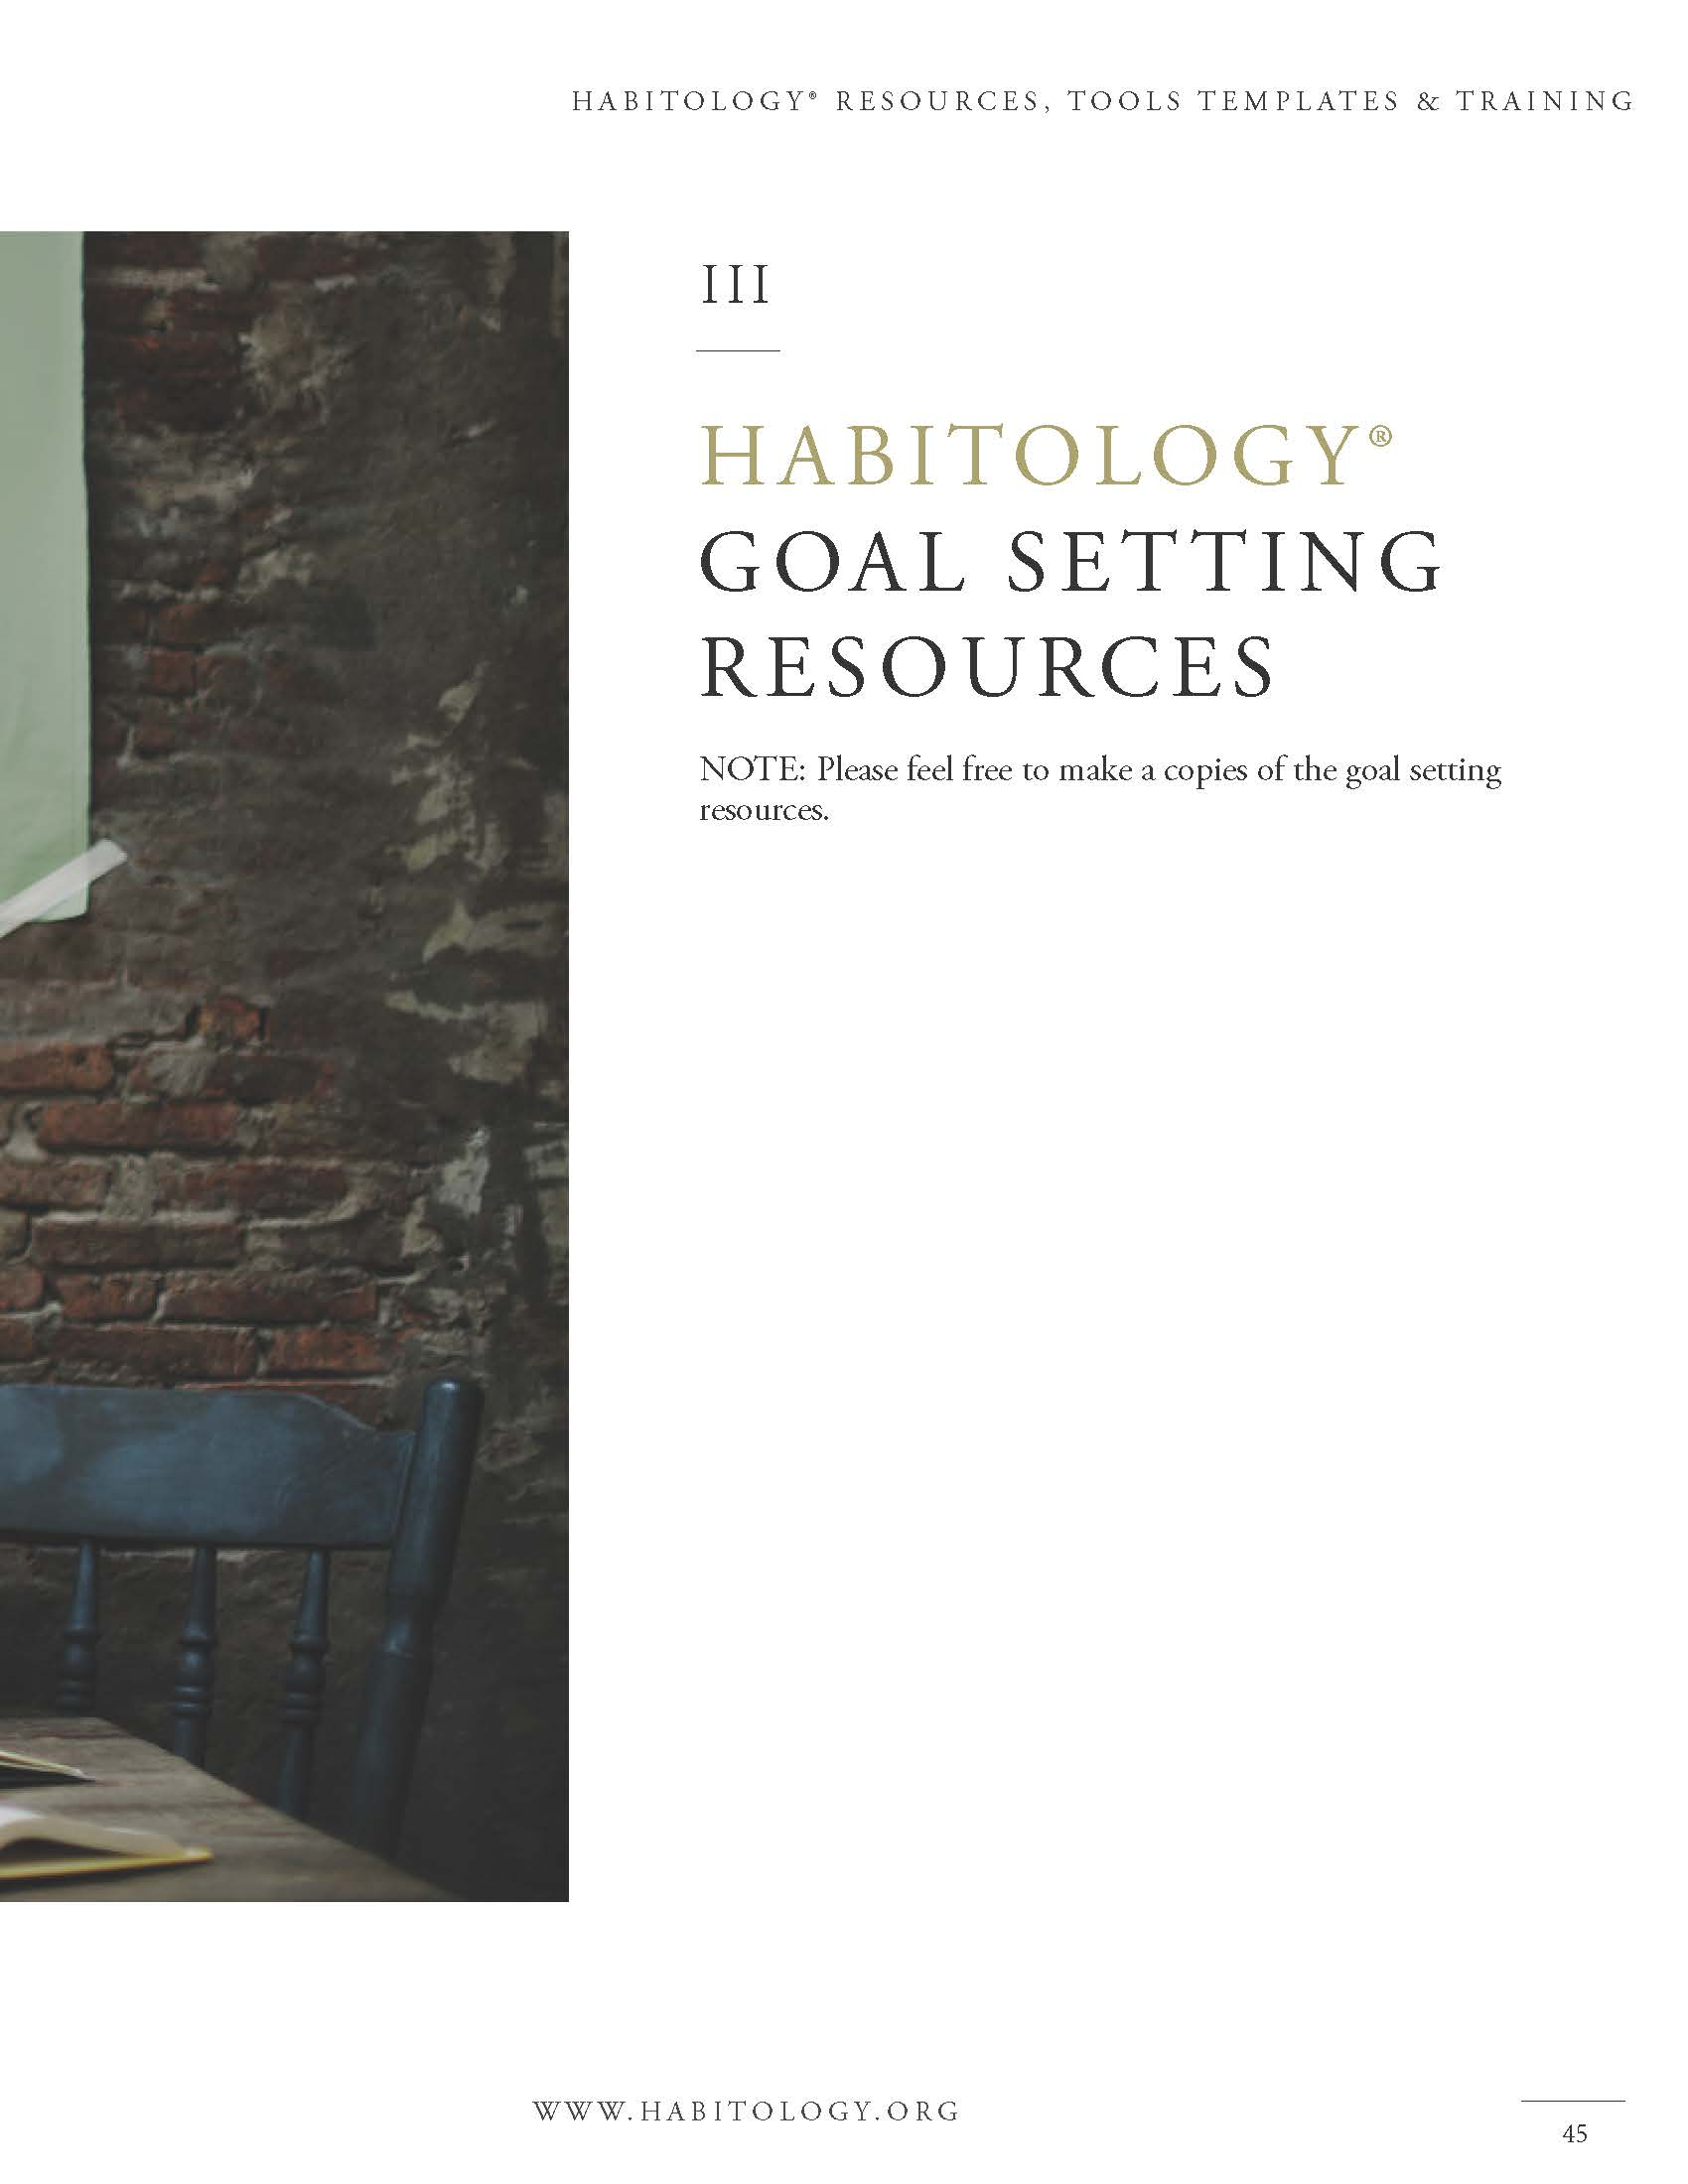 Habitology 7 Habits for Setting and Achieving Godly Goals, V7, 06-27-17 Page 45